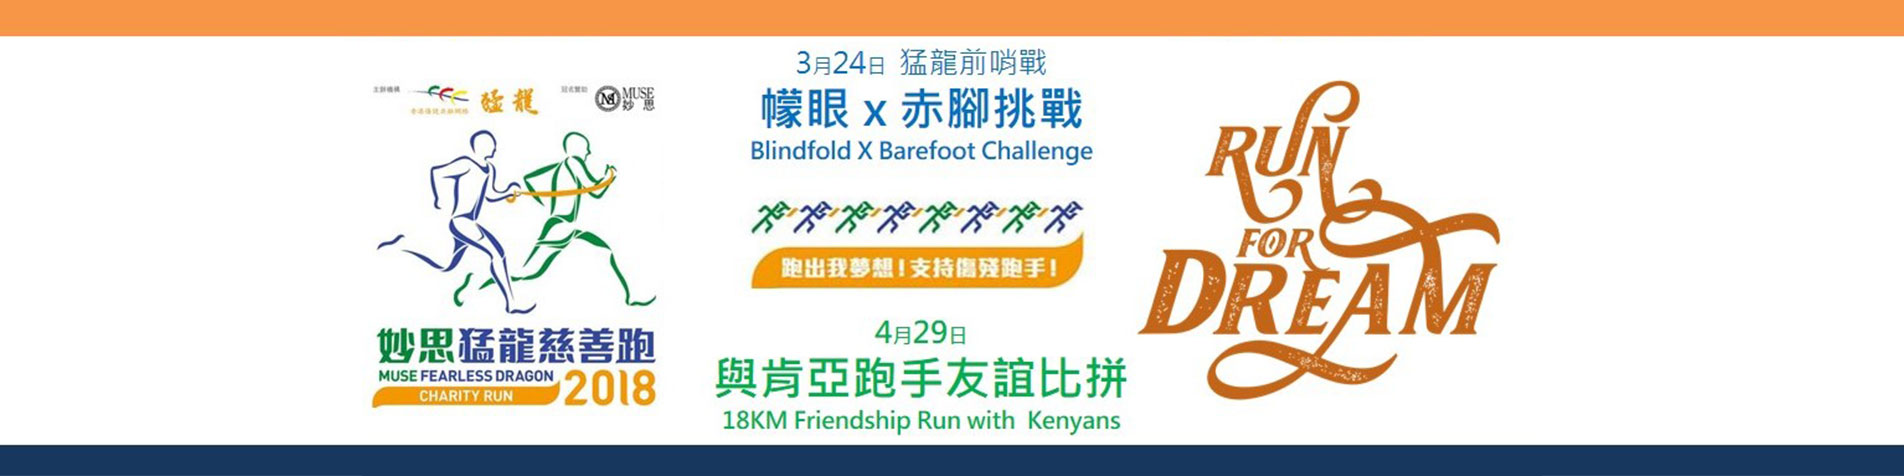 Muse Fearless Dragon Charity Run – Friendship Run with Kenyans (29 April 2018)